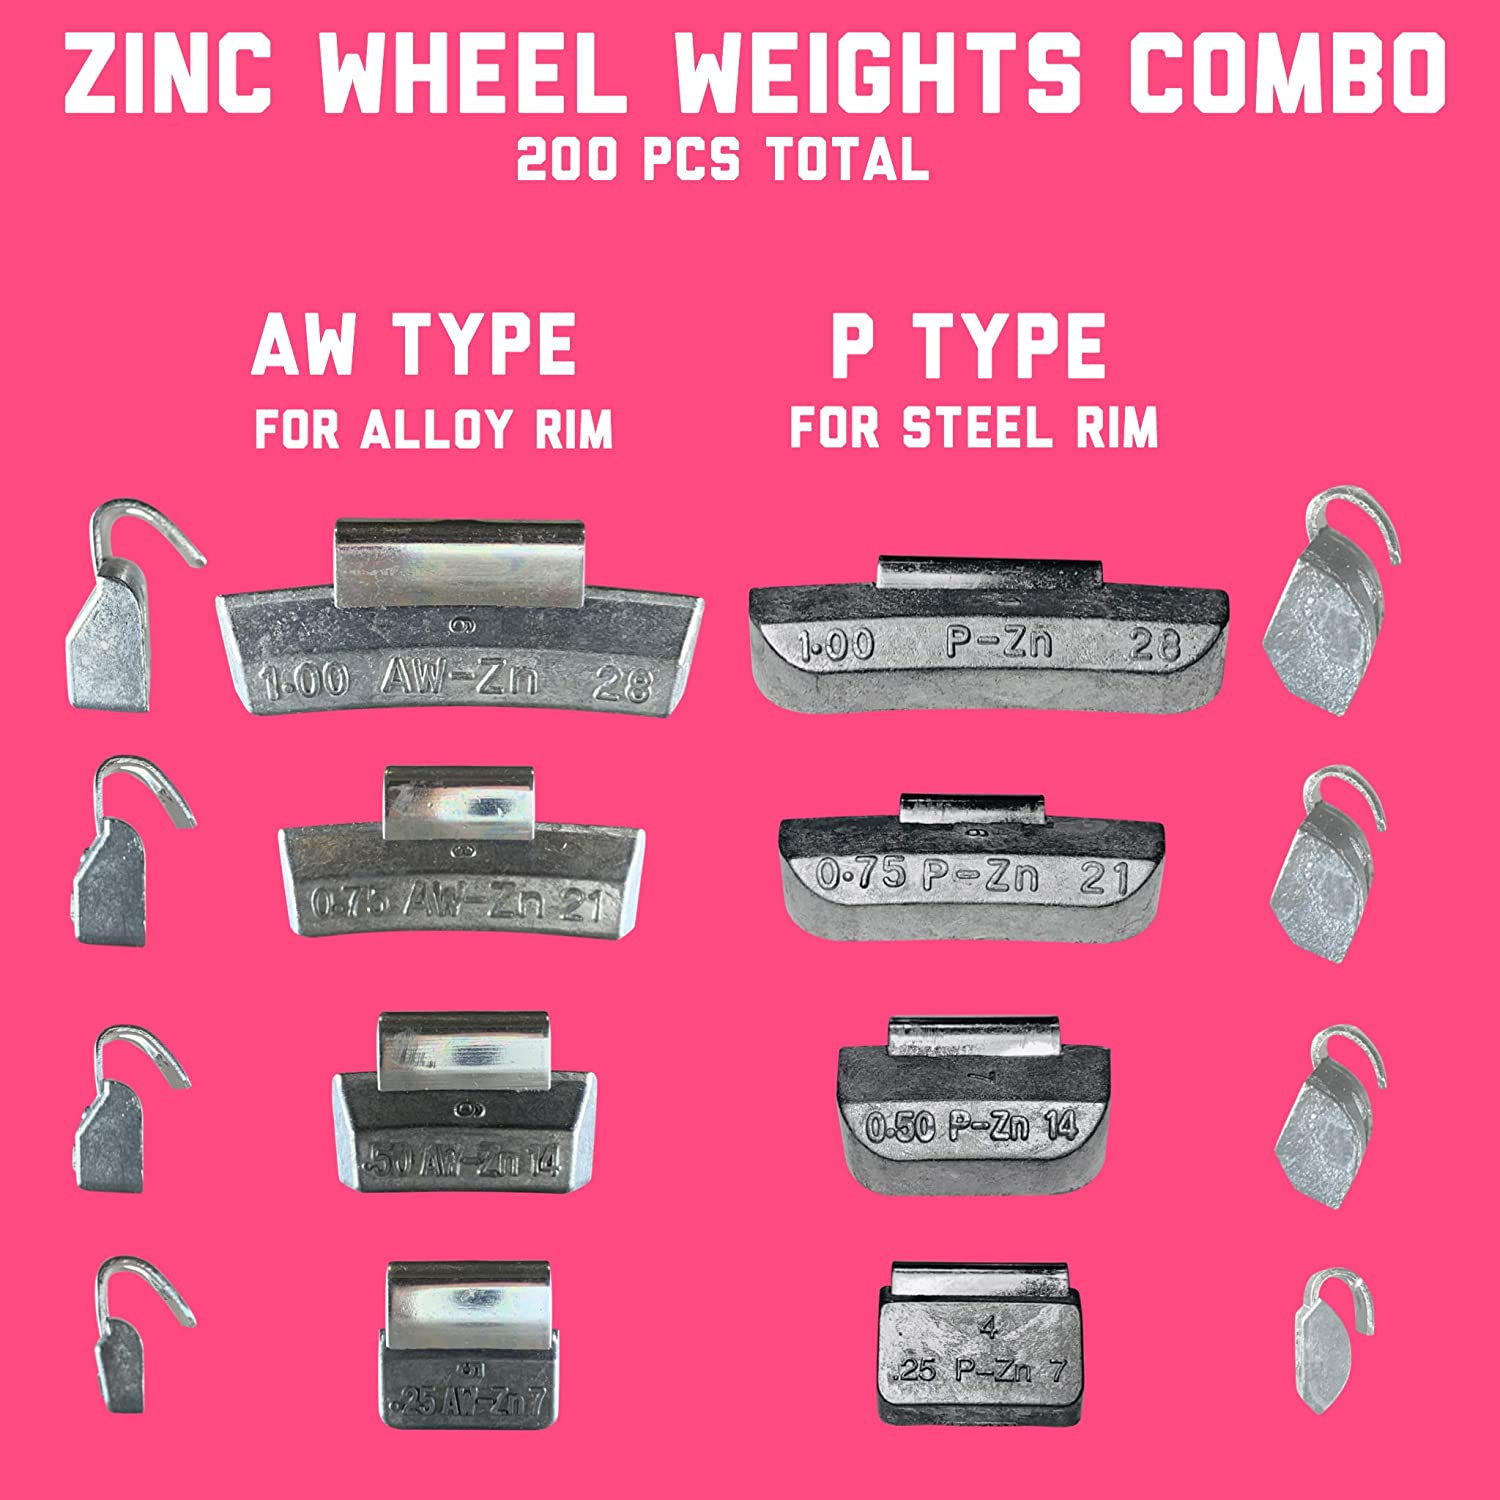 Gallardo Tire Products Combo of ZINC Clip on Wheel Weights 100 AW Type for Alloy Rims and 100 P Type for Steel Rims 200 Pcs Total